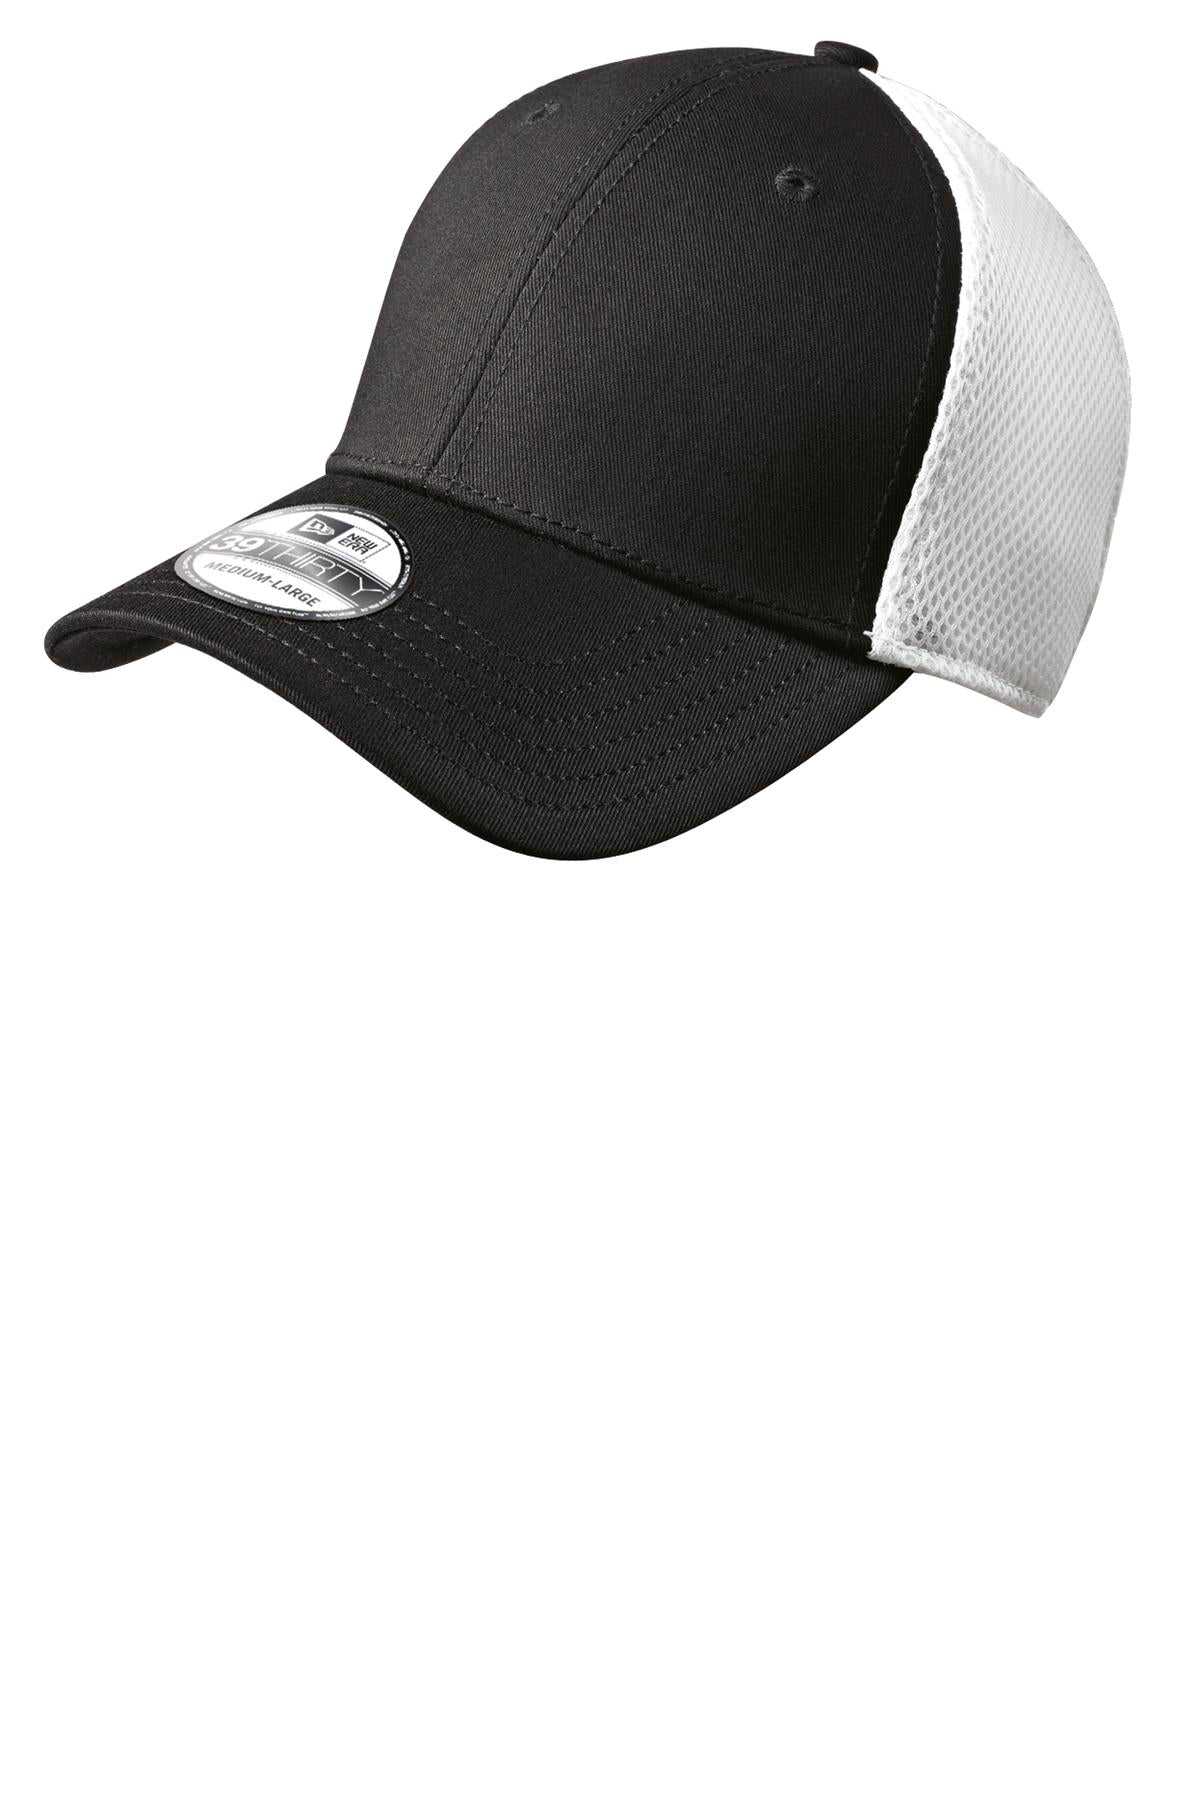 New Era® - Stretch Mesh Cap.  NE1020 - Aspire Zone